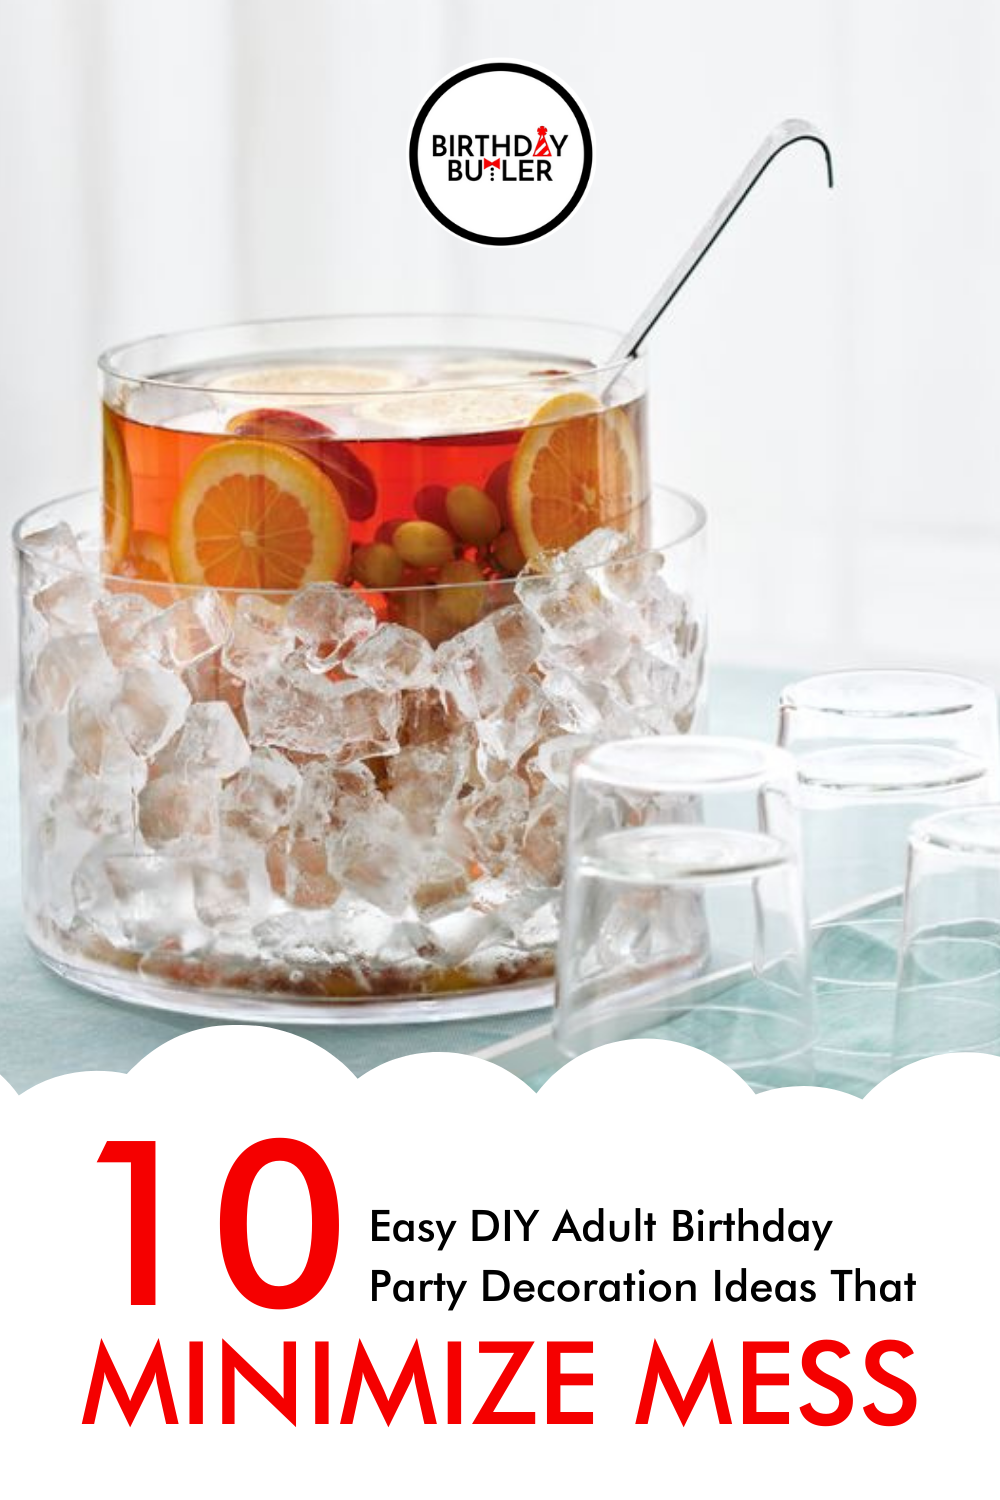 Easy DIY Adult Birthday Party Decoration Ideas